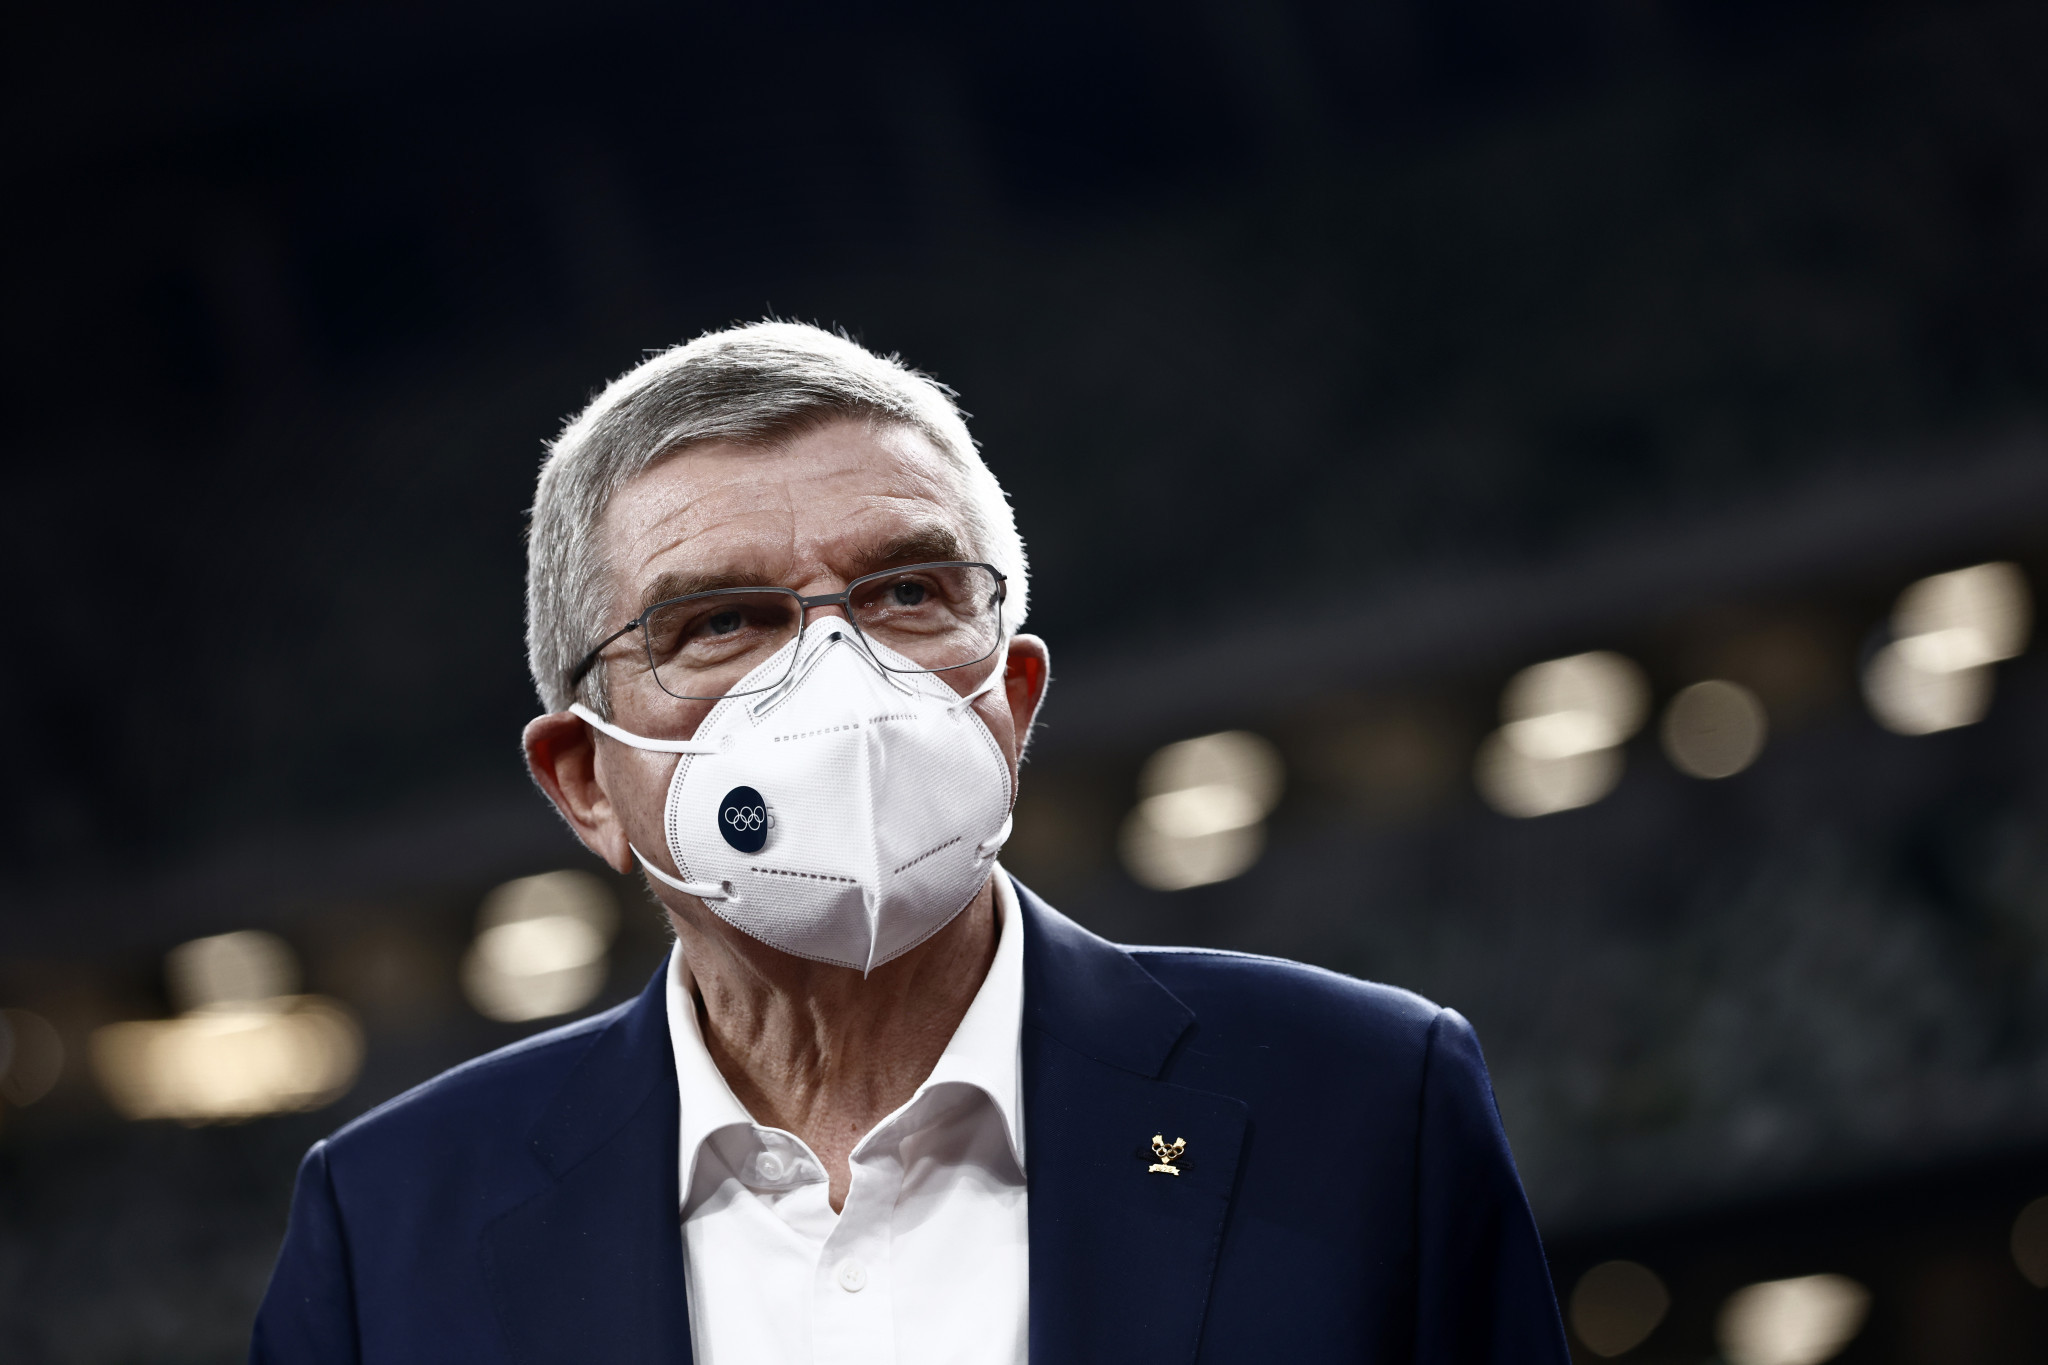 """IOC President Thomas Bach added the word """"together"""" to the Olympic motto before the Tokyo 2020 Olympic Games ©Getty Images"""